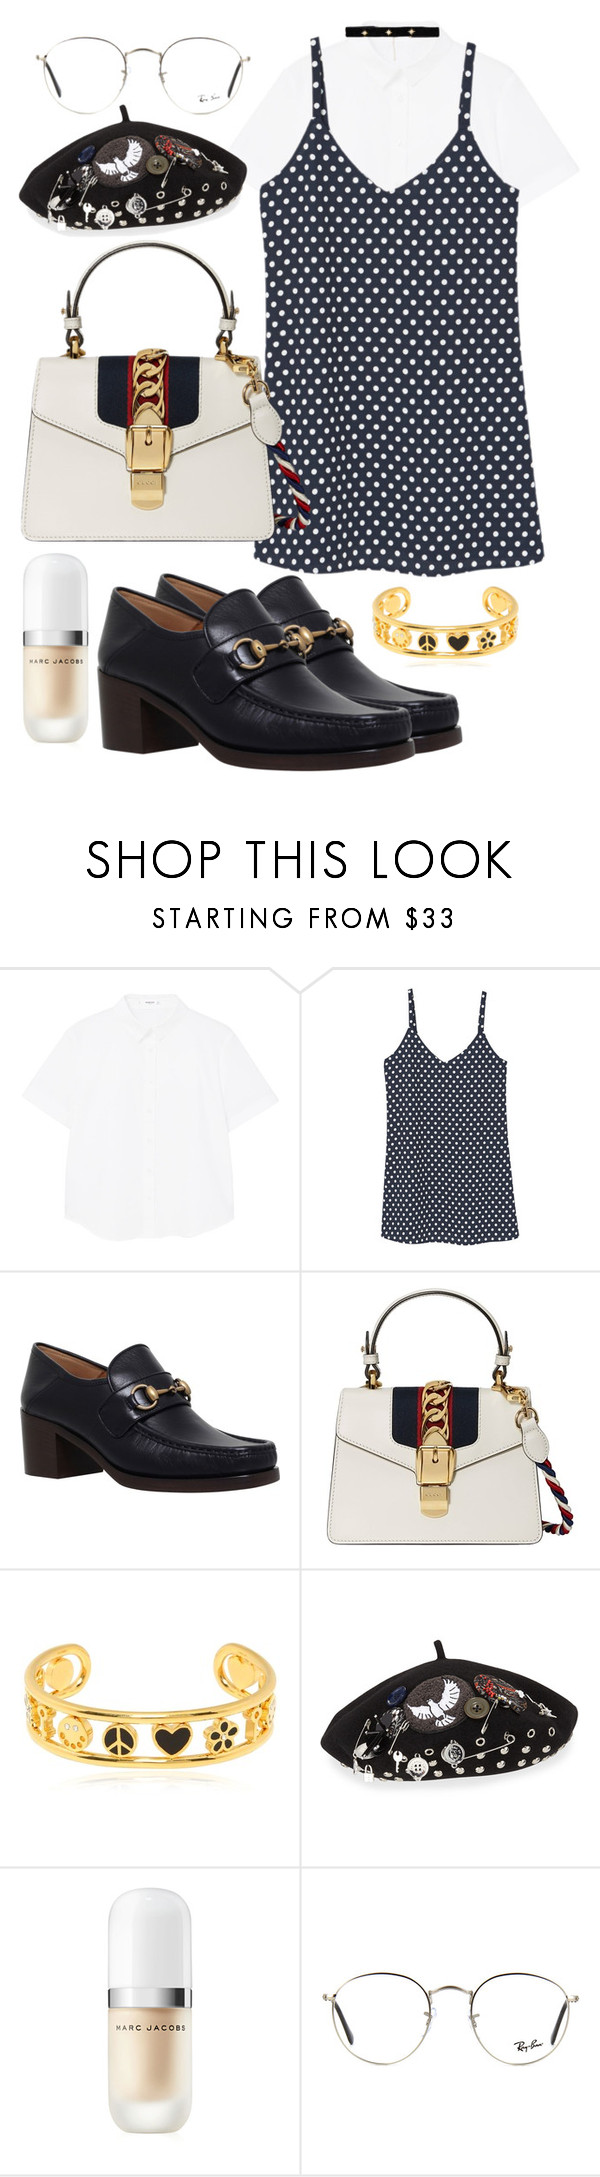 """""""Untitled #1054"""" by veronice-lopez ❤ liked on Polyvore featuring MANGO, Gucci, Marc by Marc Jacobs, Marc Jacobs, Ray-Ban and Bartoli"""